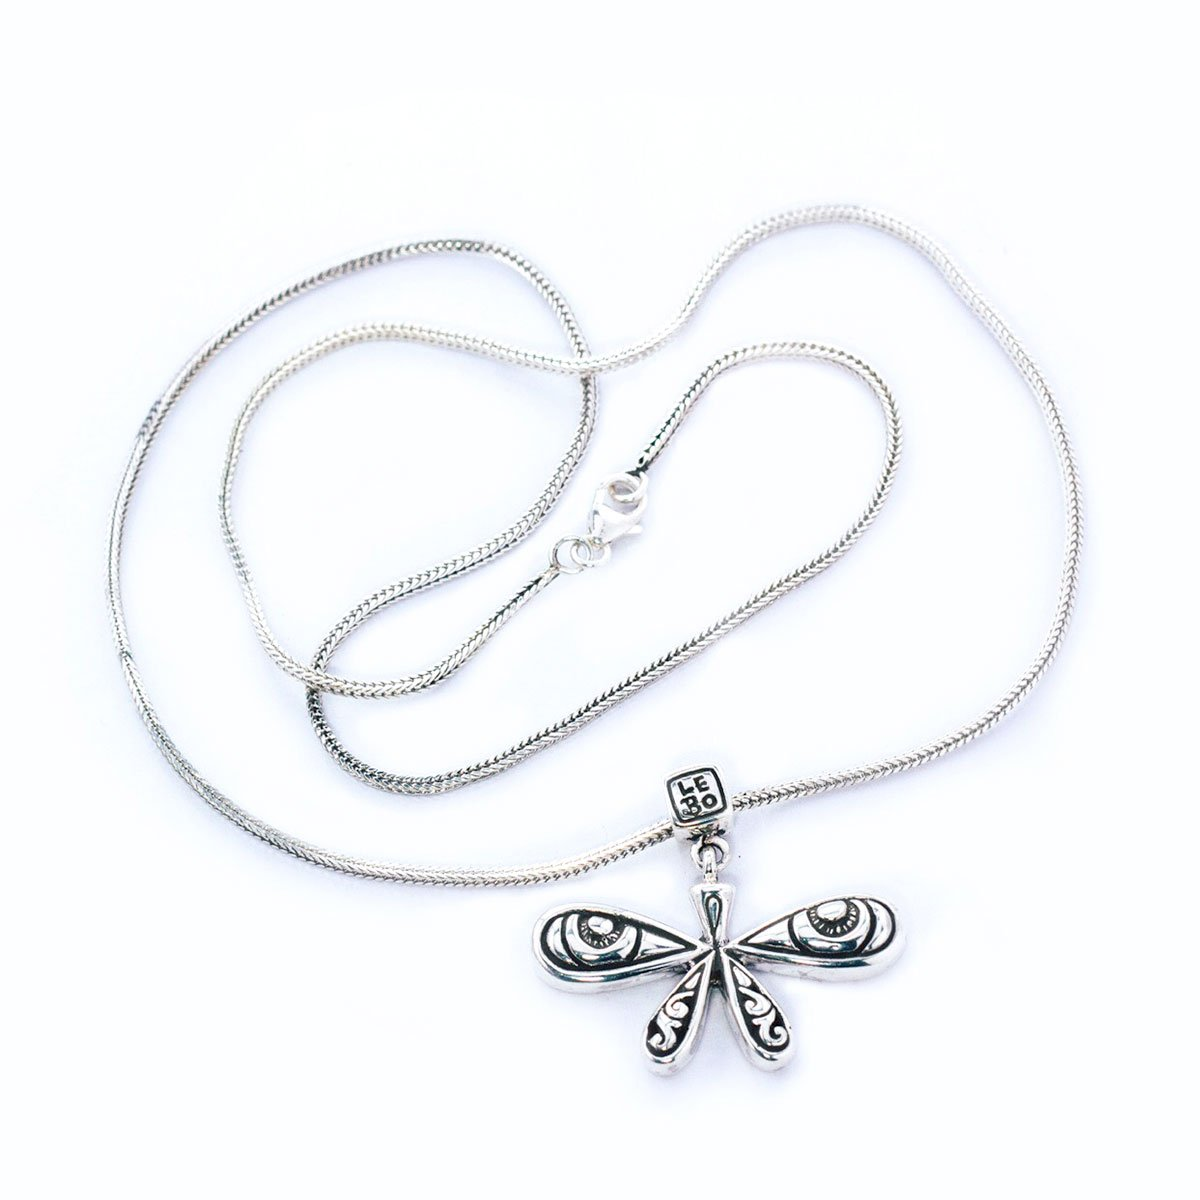 Lebo Art A Light Of Hope Limited Edition Necklace